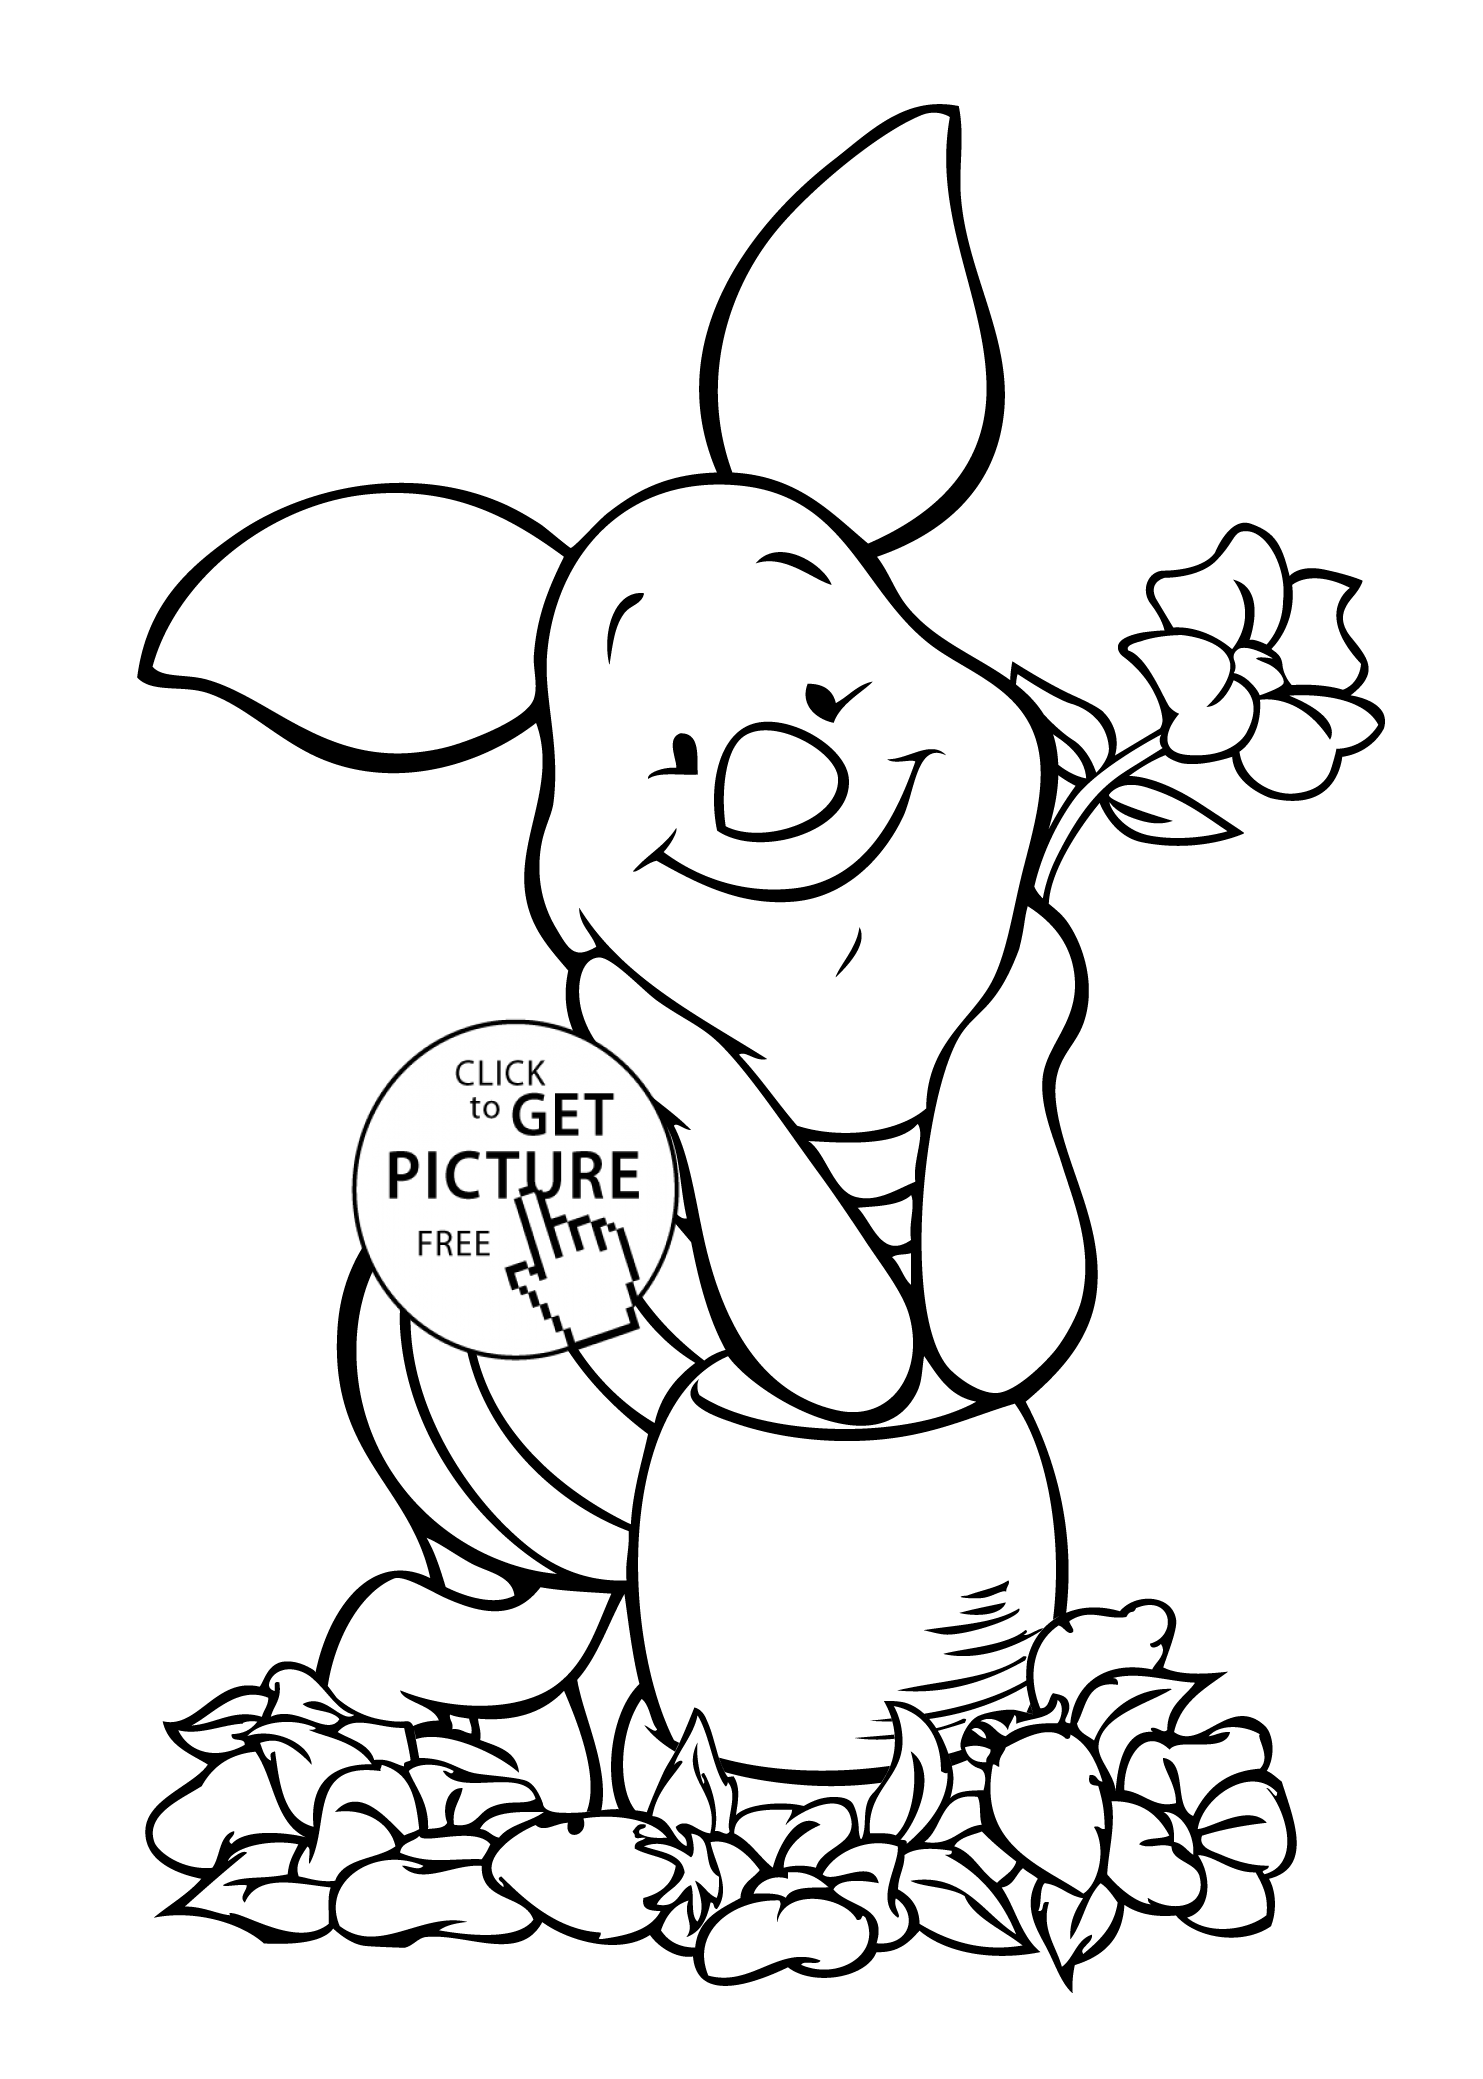 Winnie Pooh piglet coloring page for kids free printable | colorfy ...